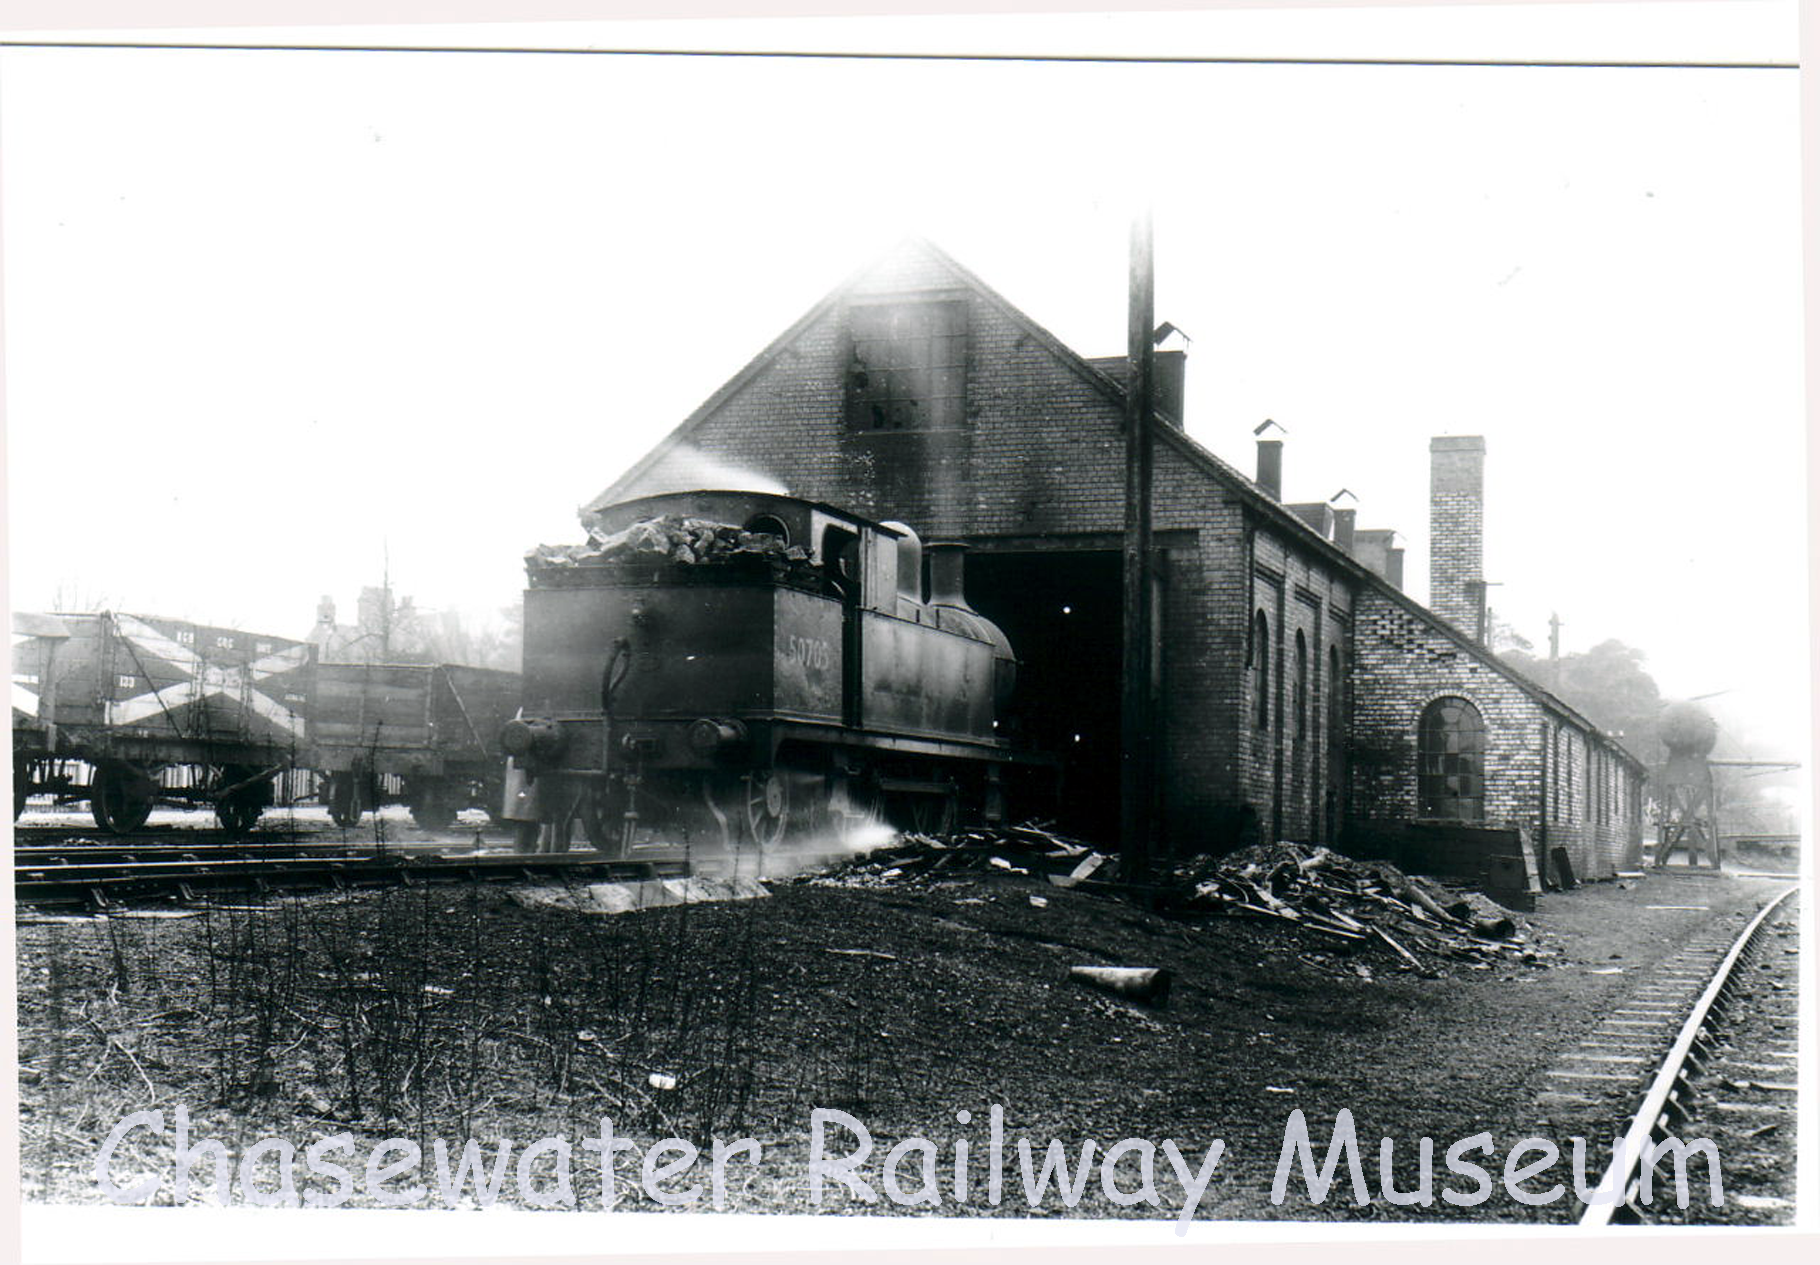 How To Move A Shed >> Chasewater Railway Museum Catalogue – Album 1, Local Colliery Locos | Chasewater Railway Museum